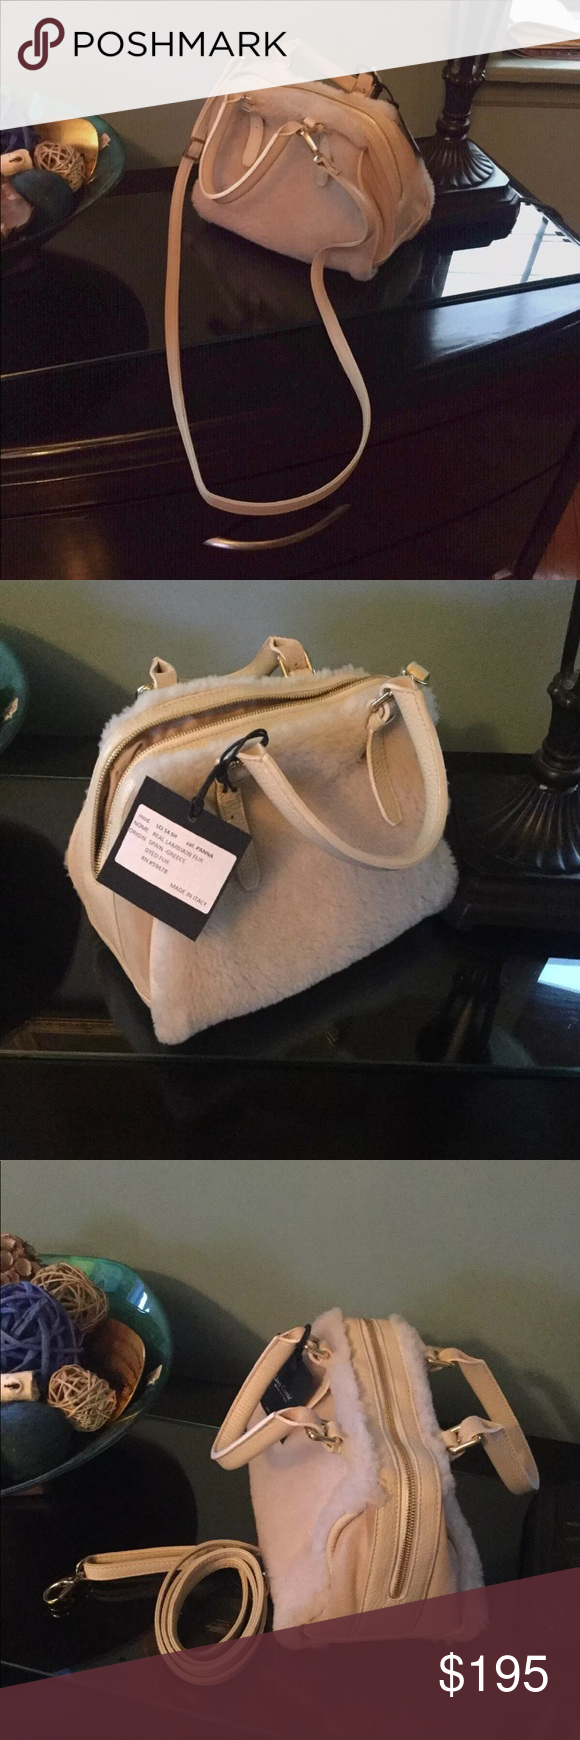 7b83ccbafd Lisa Conte Bag Real LAMBSKIN FUR bag by Lisa Conte. Made in Italy . Very  beautiful bag. New with tags . Color is like light cream. Lisa Conte Bags  Mini Bags